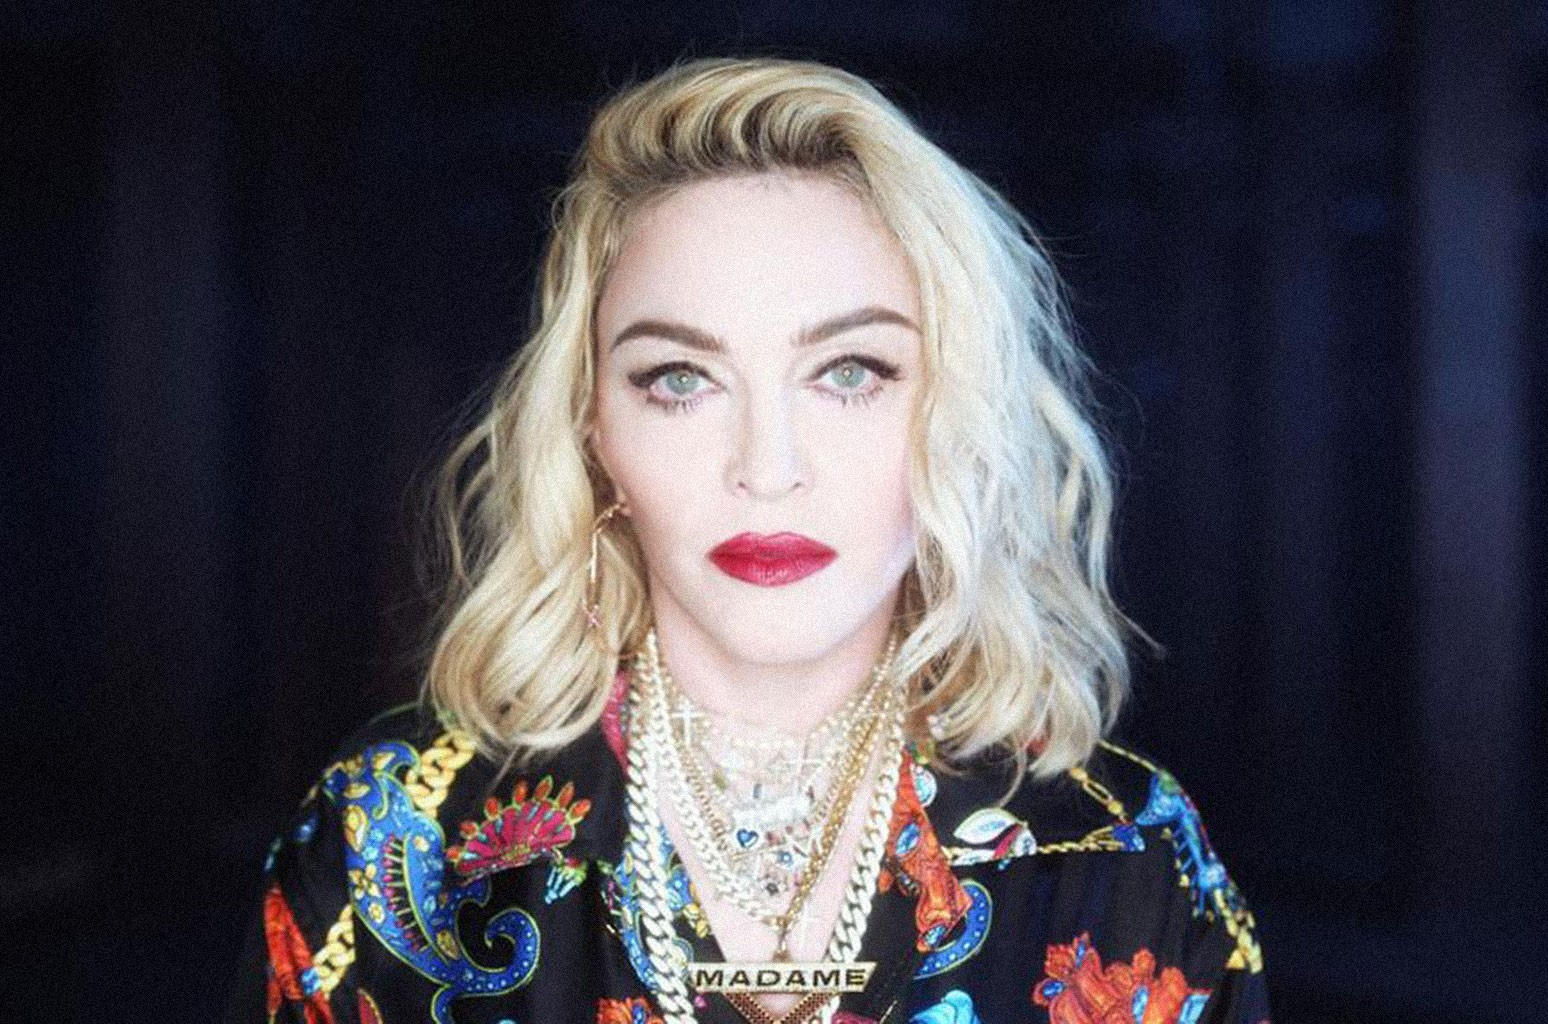 Madonna Cancels Final Madame X Shows Over Coronavirus Restrictions